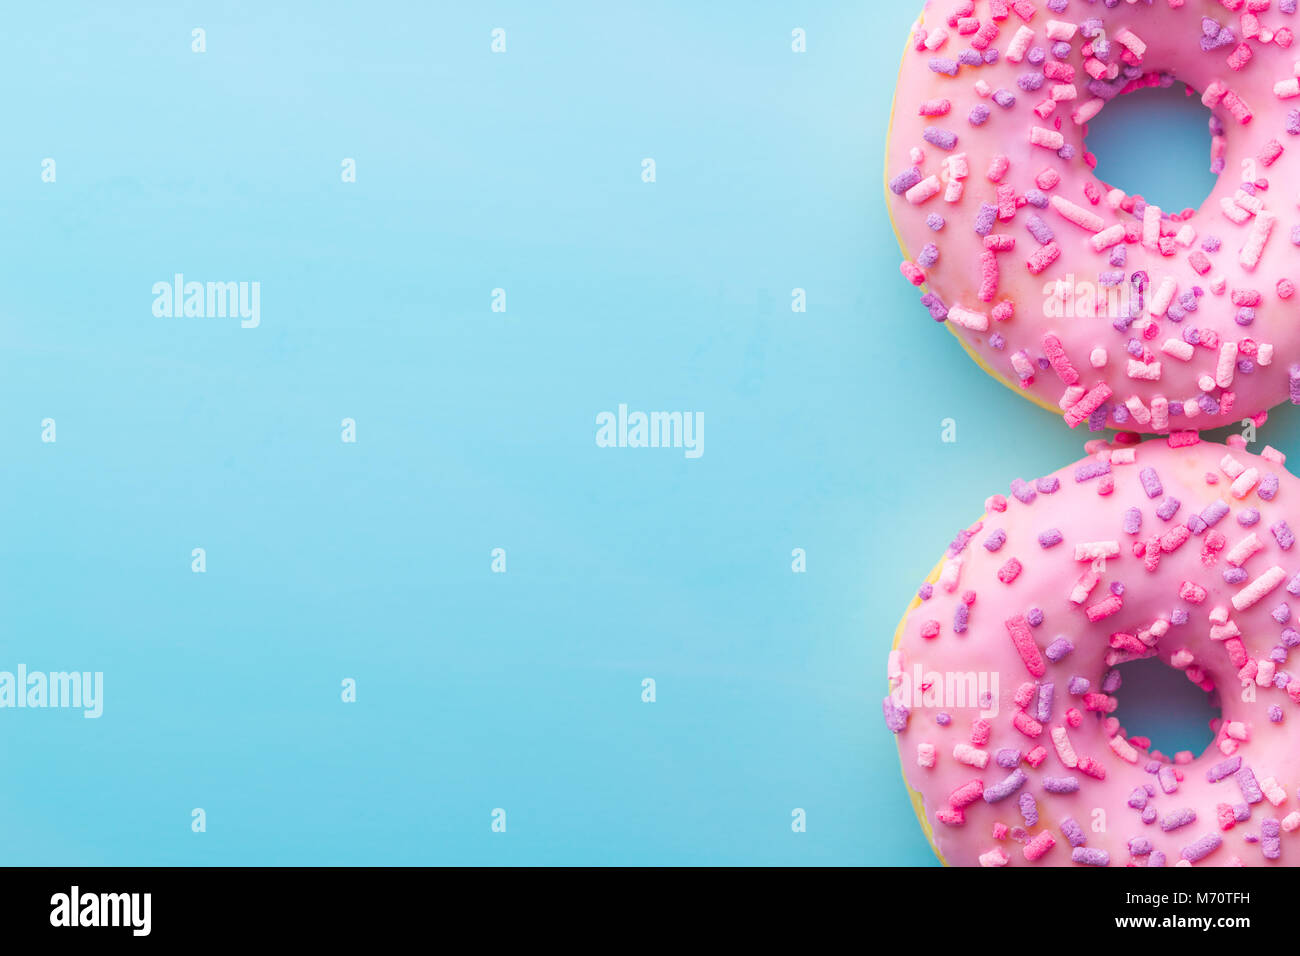 Two pink donuts on blue background. - Stock Image